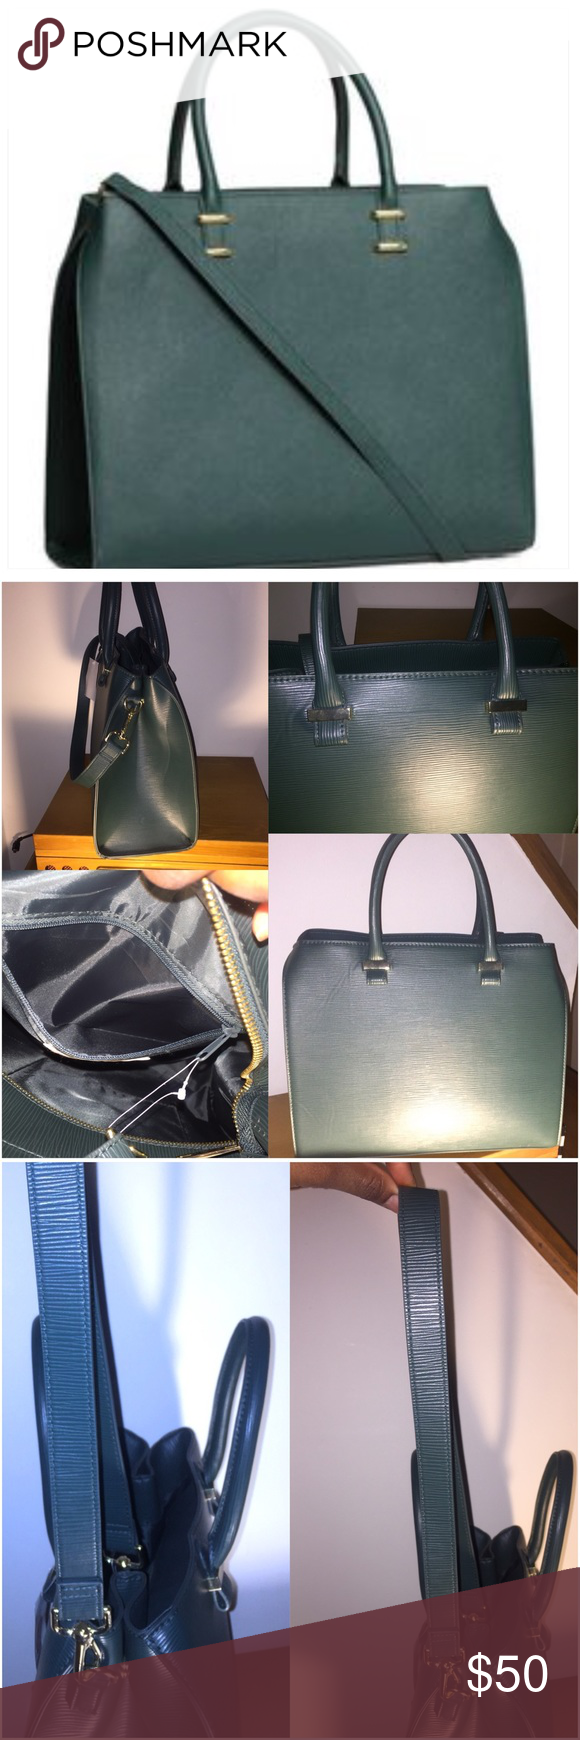 H&M Structured Dark Green Bag with Strap NWT Brand new purse that is dark green with gold hardware. Fashion forward and has an amazing textured detail look through the bag. Zipper closure with side snap buttons to contract or expand and an inside packet. Removable shoulder straps are included. Super adorable bag! I love it but already have the same in maroon, tan and black.   Awesome but! Perfect for adding a staple bag to your 2017 wardrobe. Bundle and save! ✨✨✨ H&M Bags Shoulder Bags